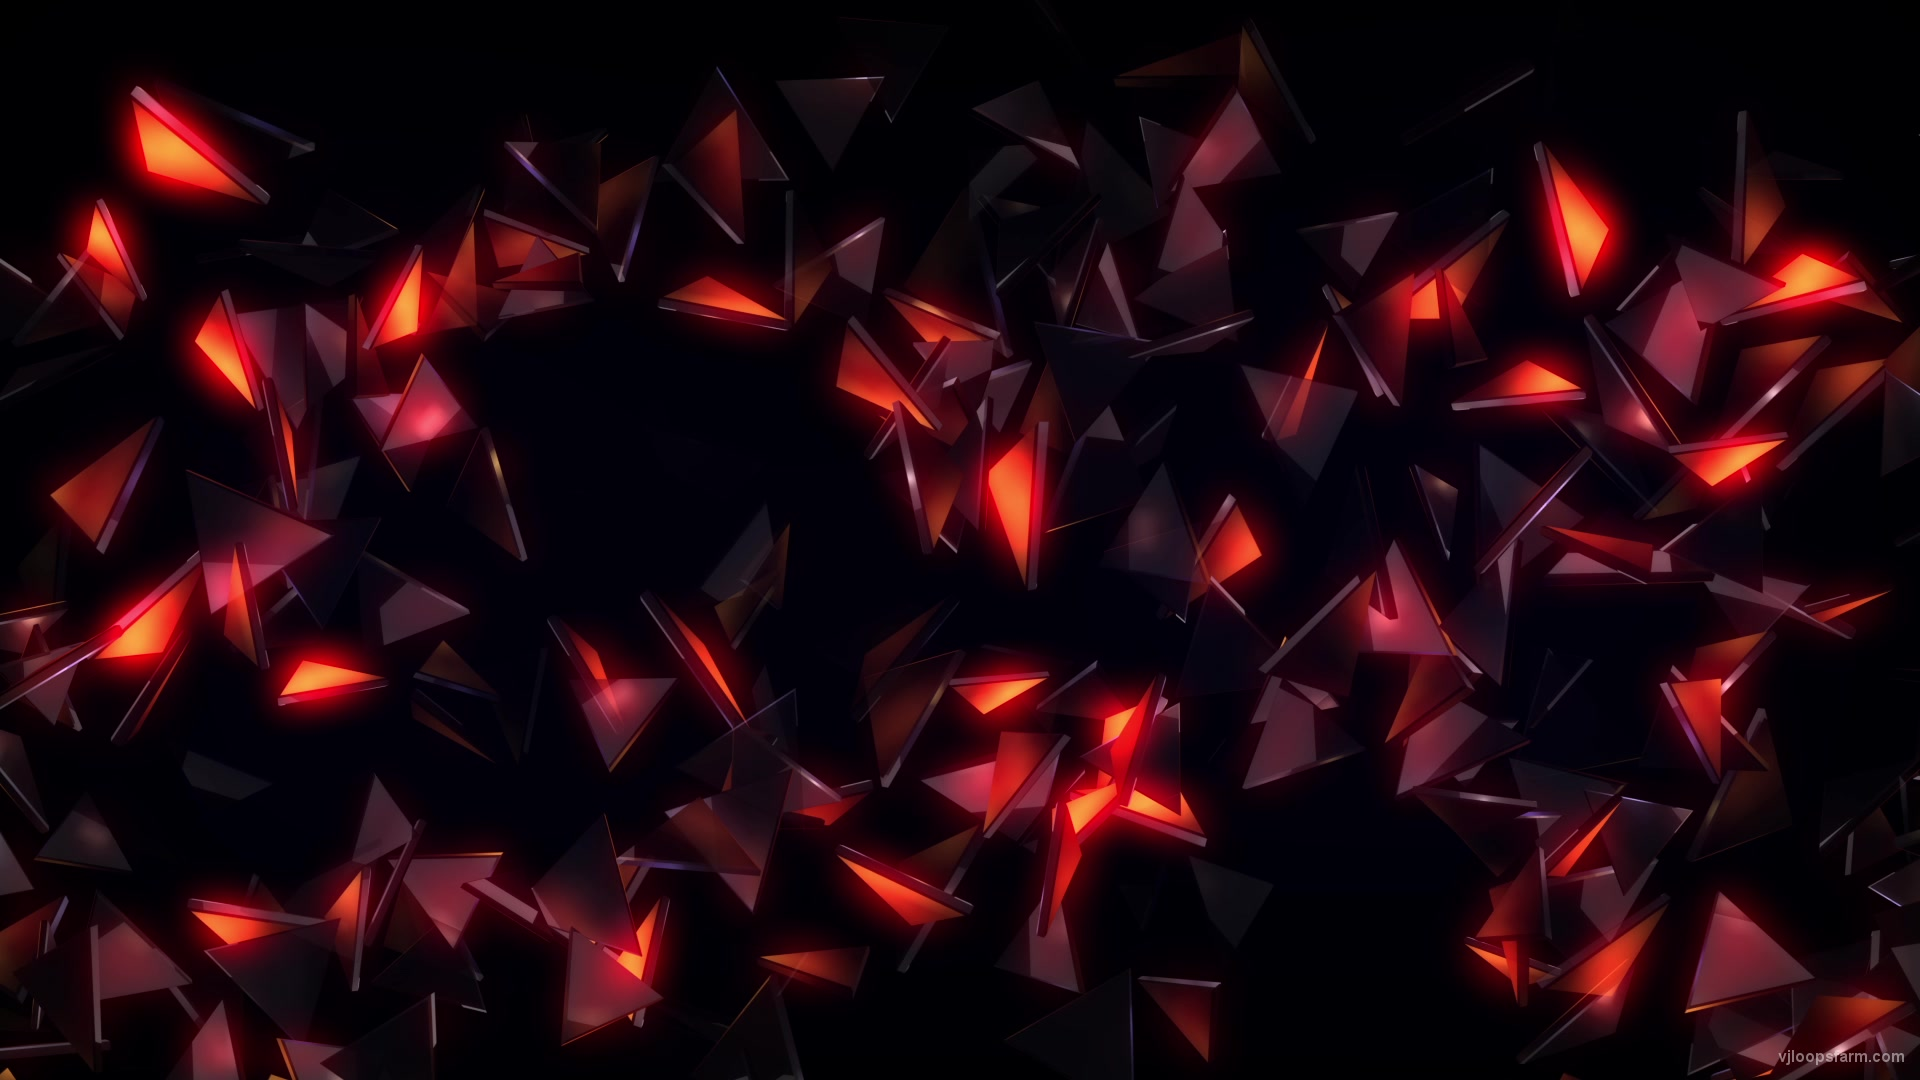 vj video background glowing-glass-triangles-up-down_003